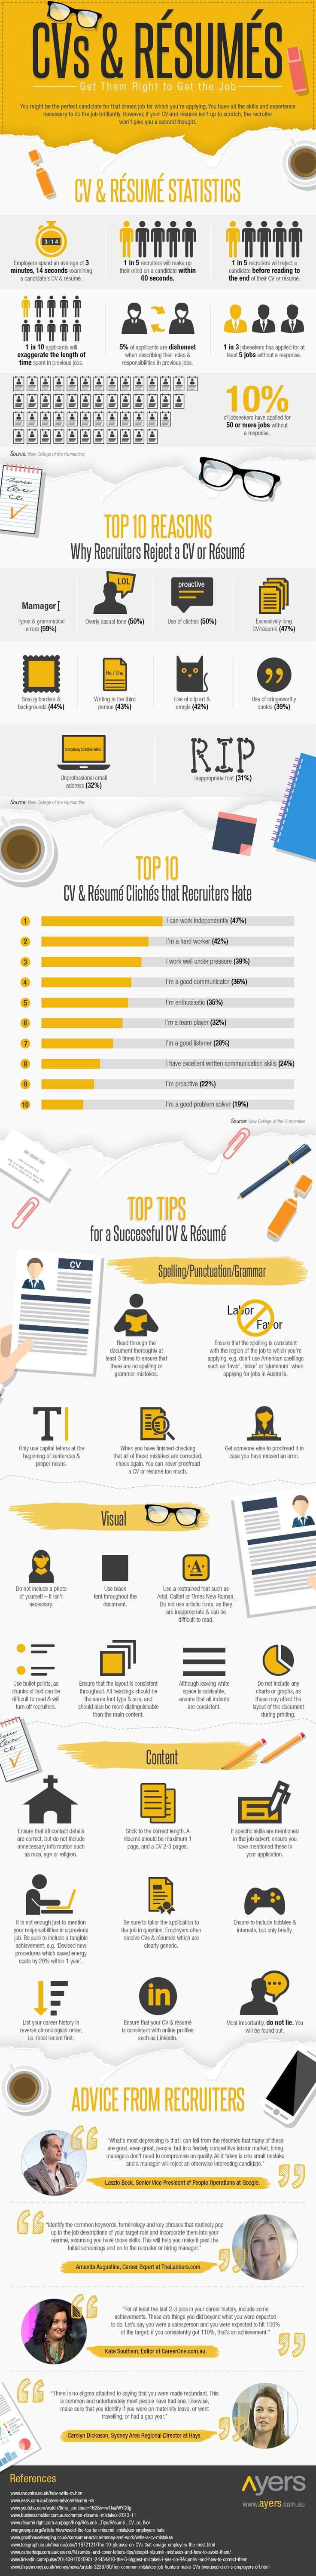 CVs & Resumes: Get Them Right to Get the Job [Infographic]